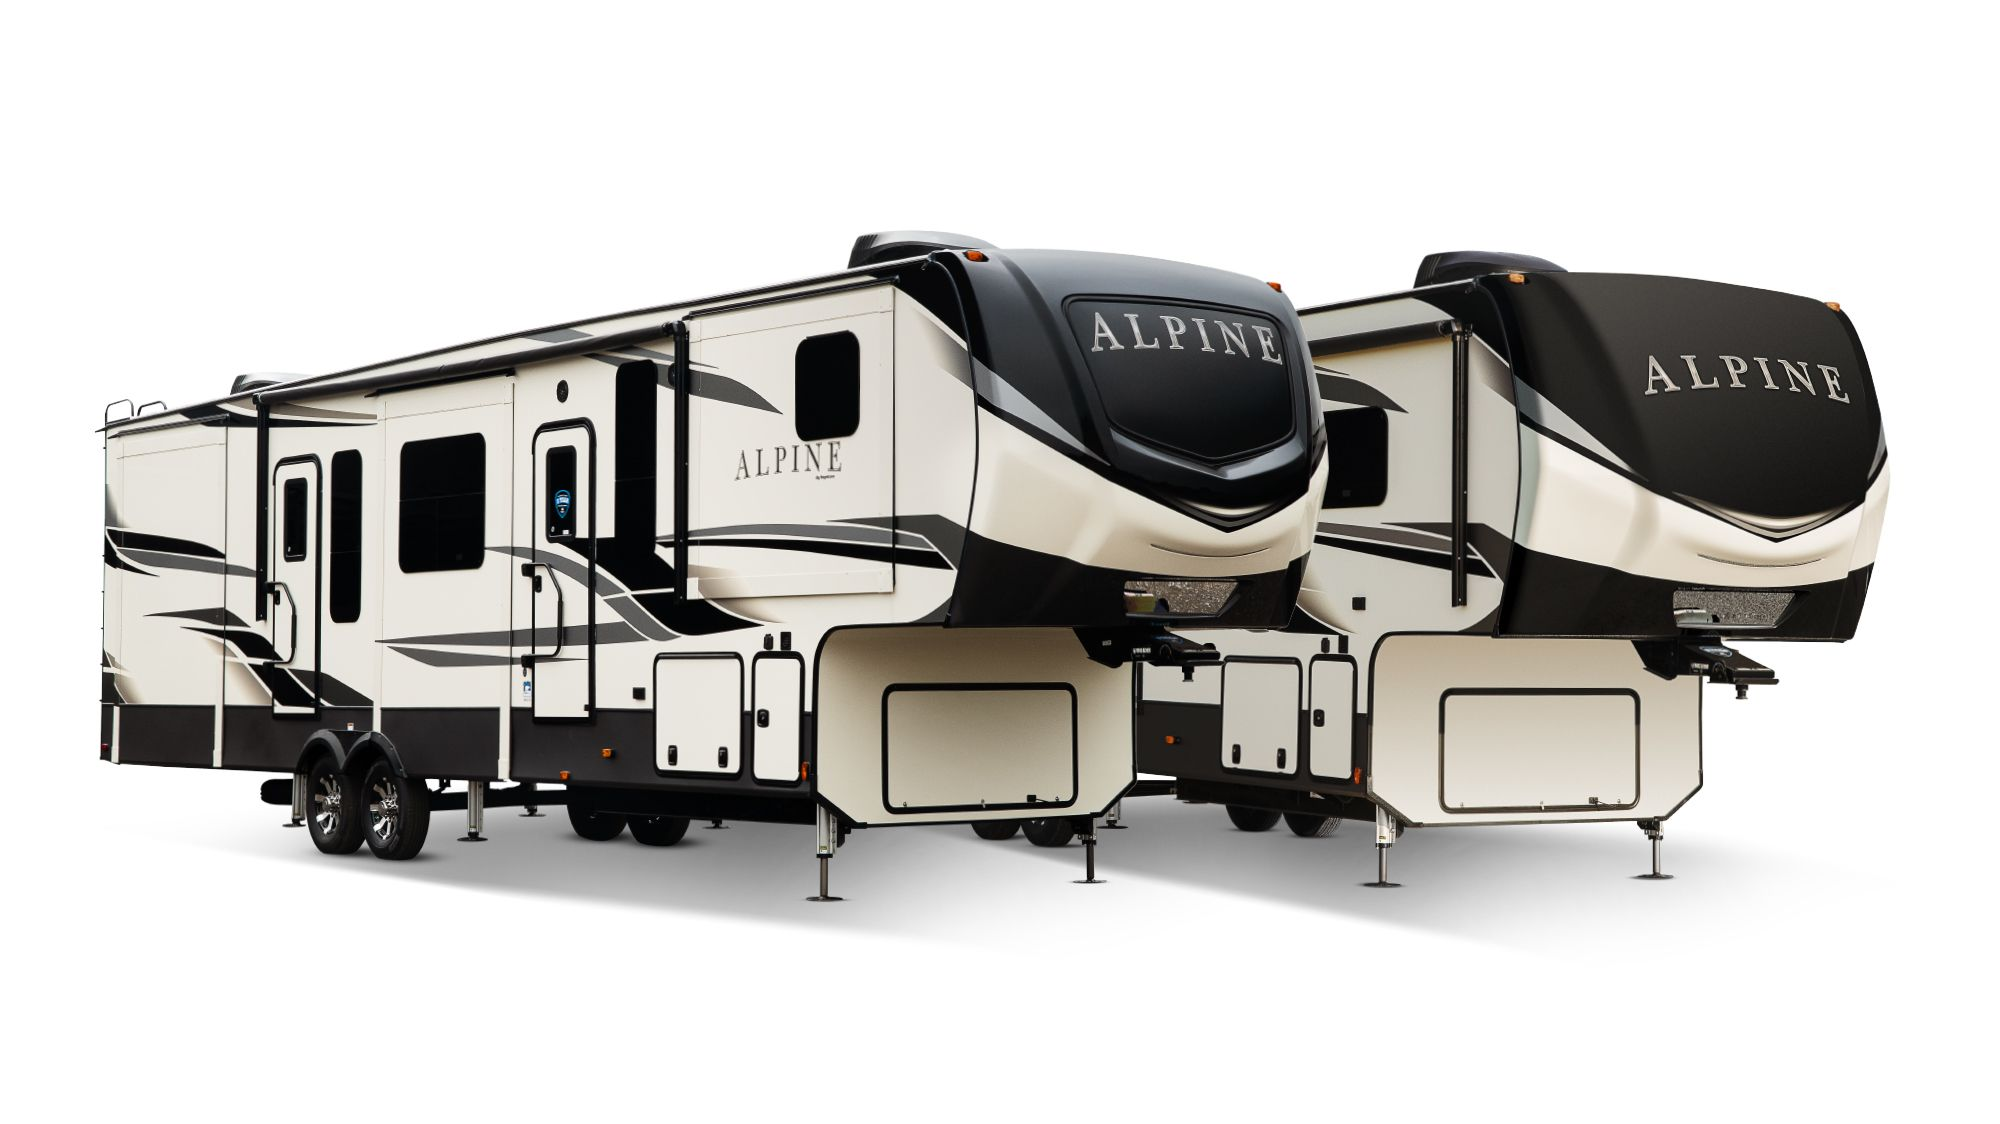 Pin On Rvs And Campers